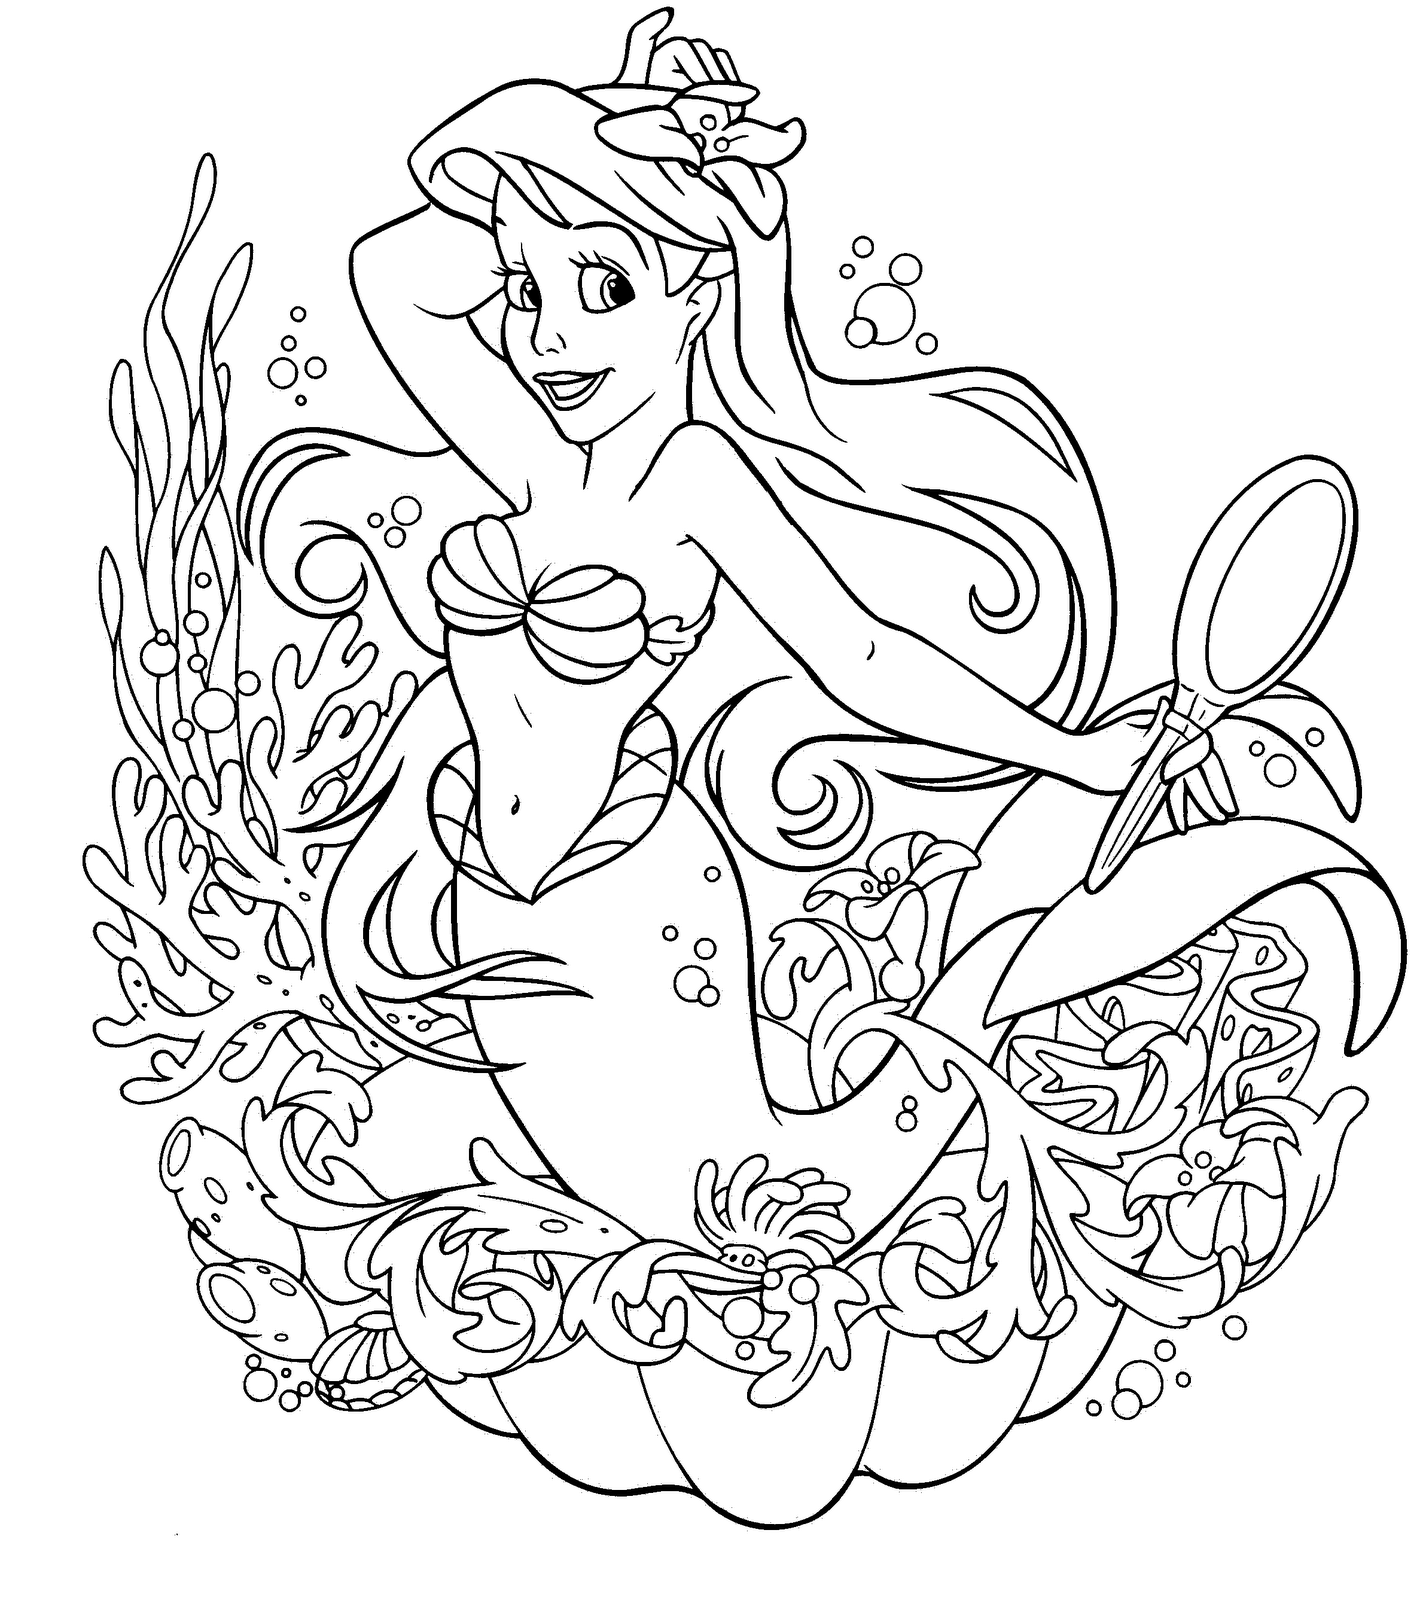 coloring ariel the mermaid print download find the suitable little mermaid ariel mermaid coloring the